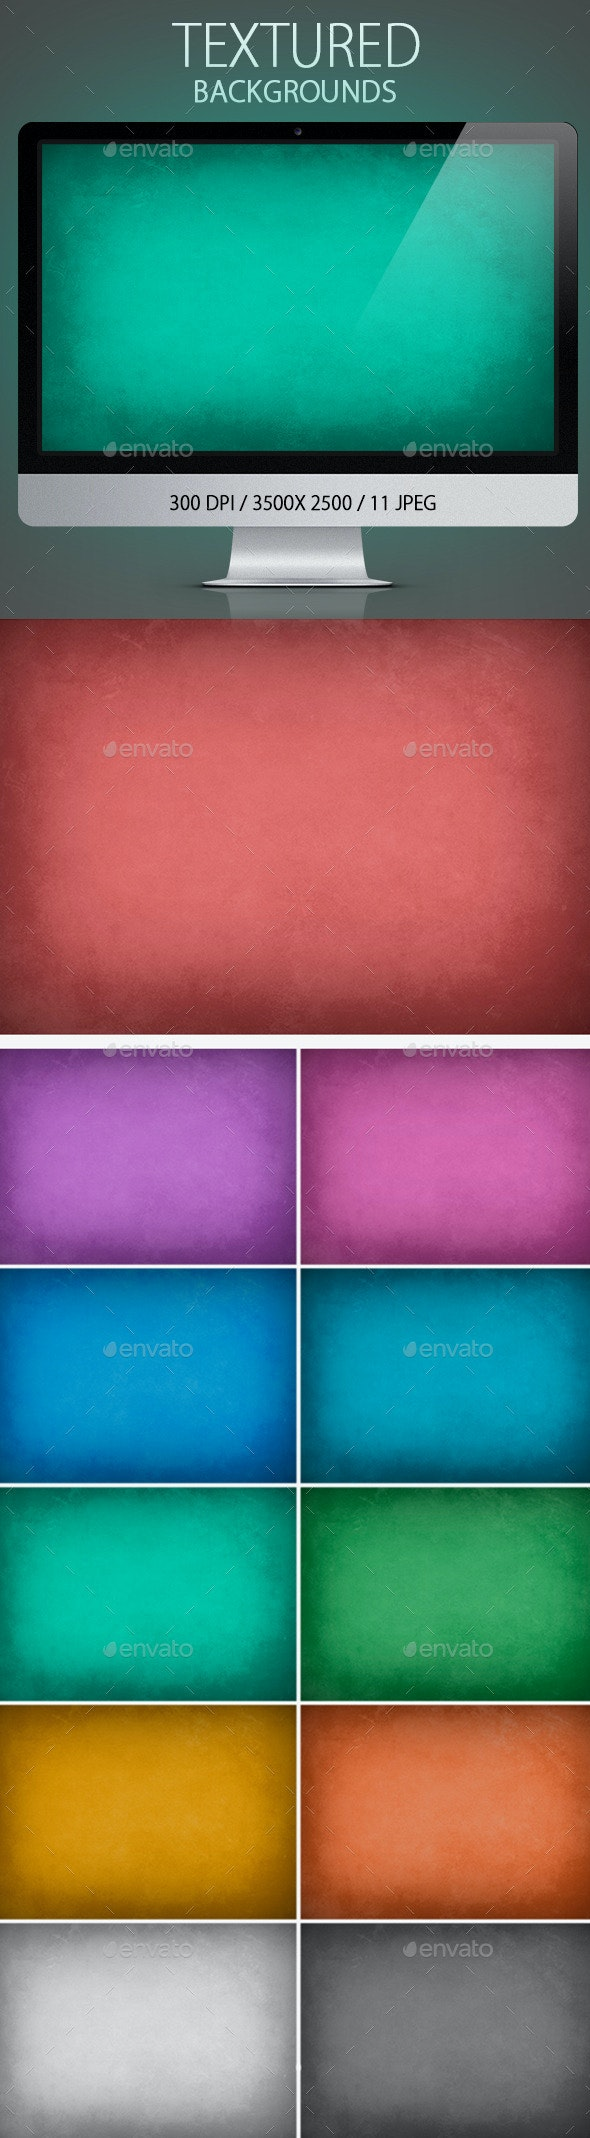 Textured Backgrounds - Abstract Backgrounds